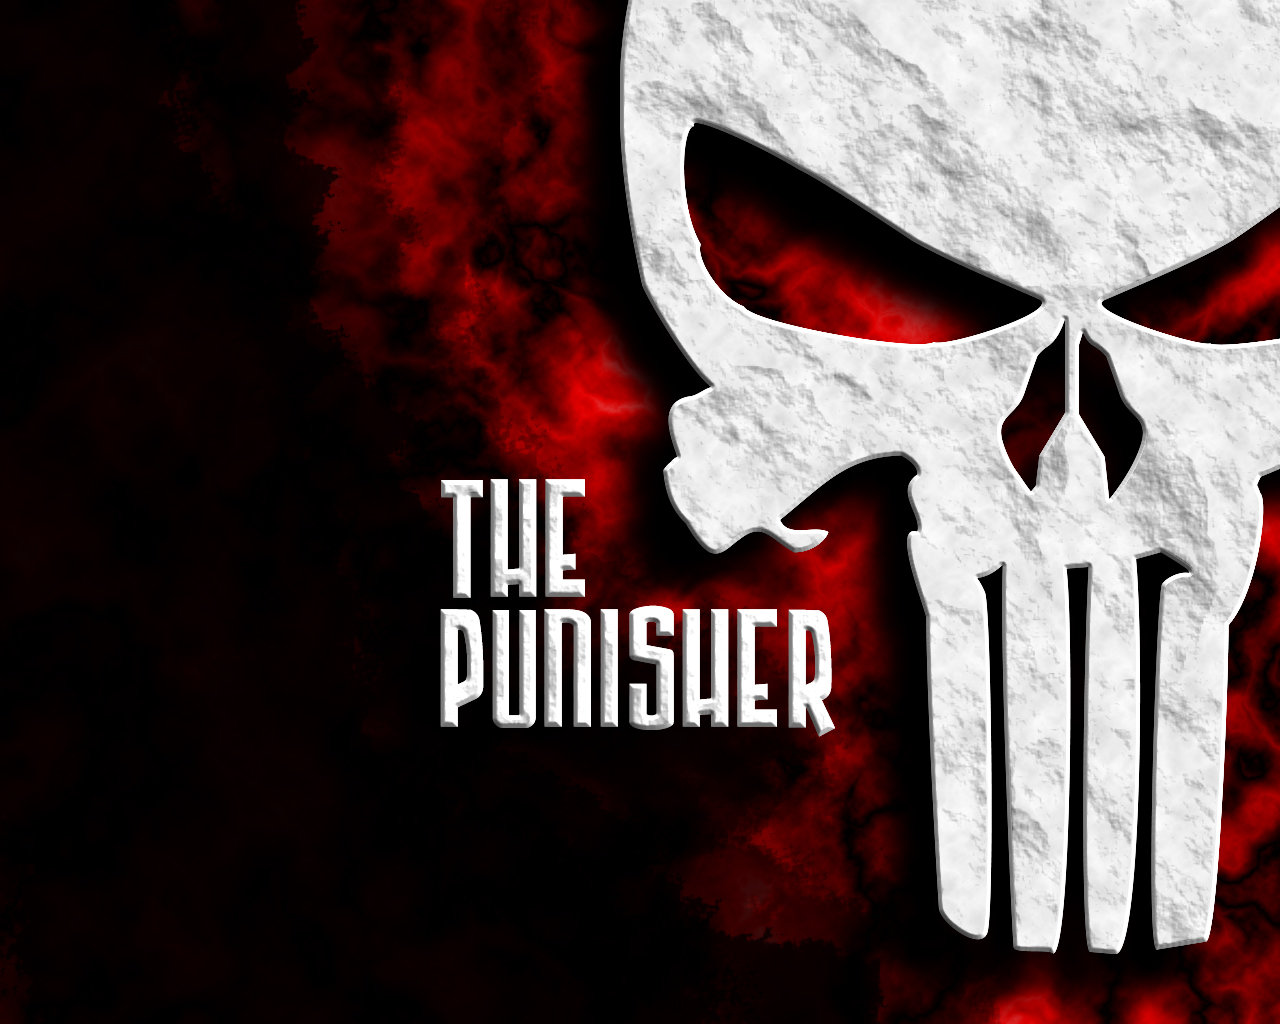 Wallpaper - The Punisher 3 by the-system on DeviantArt